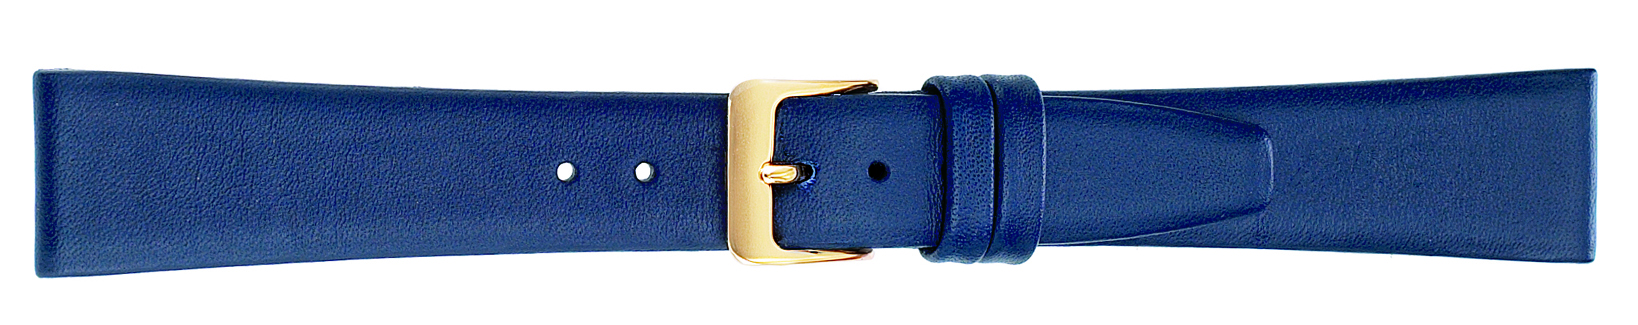 14MM Leather Band Navy Smooth Calf-0